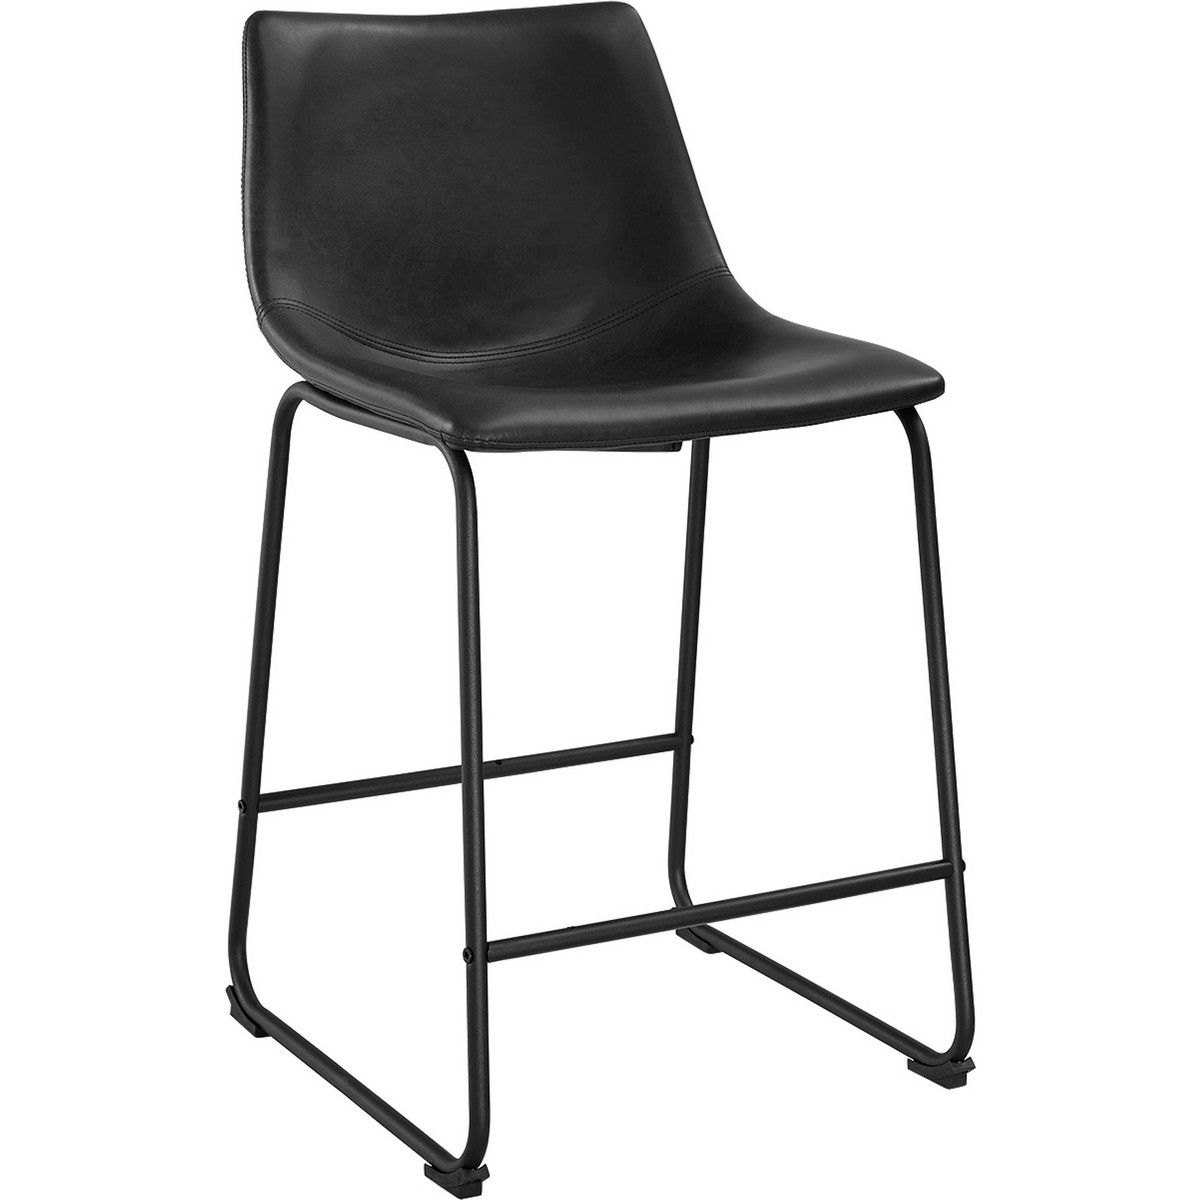 Walker Edison Chl26bl Black Leatherette Counter Stools On Powder